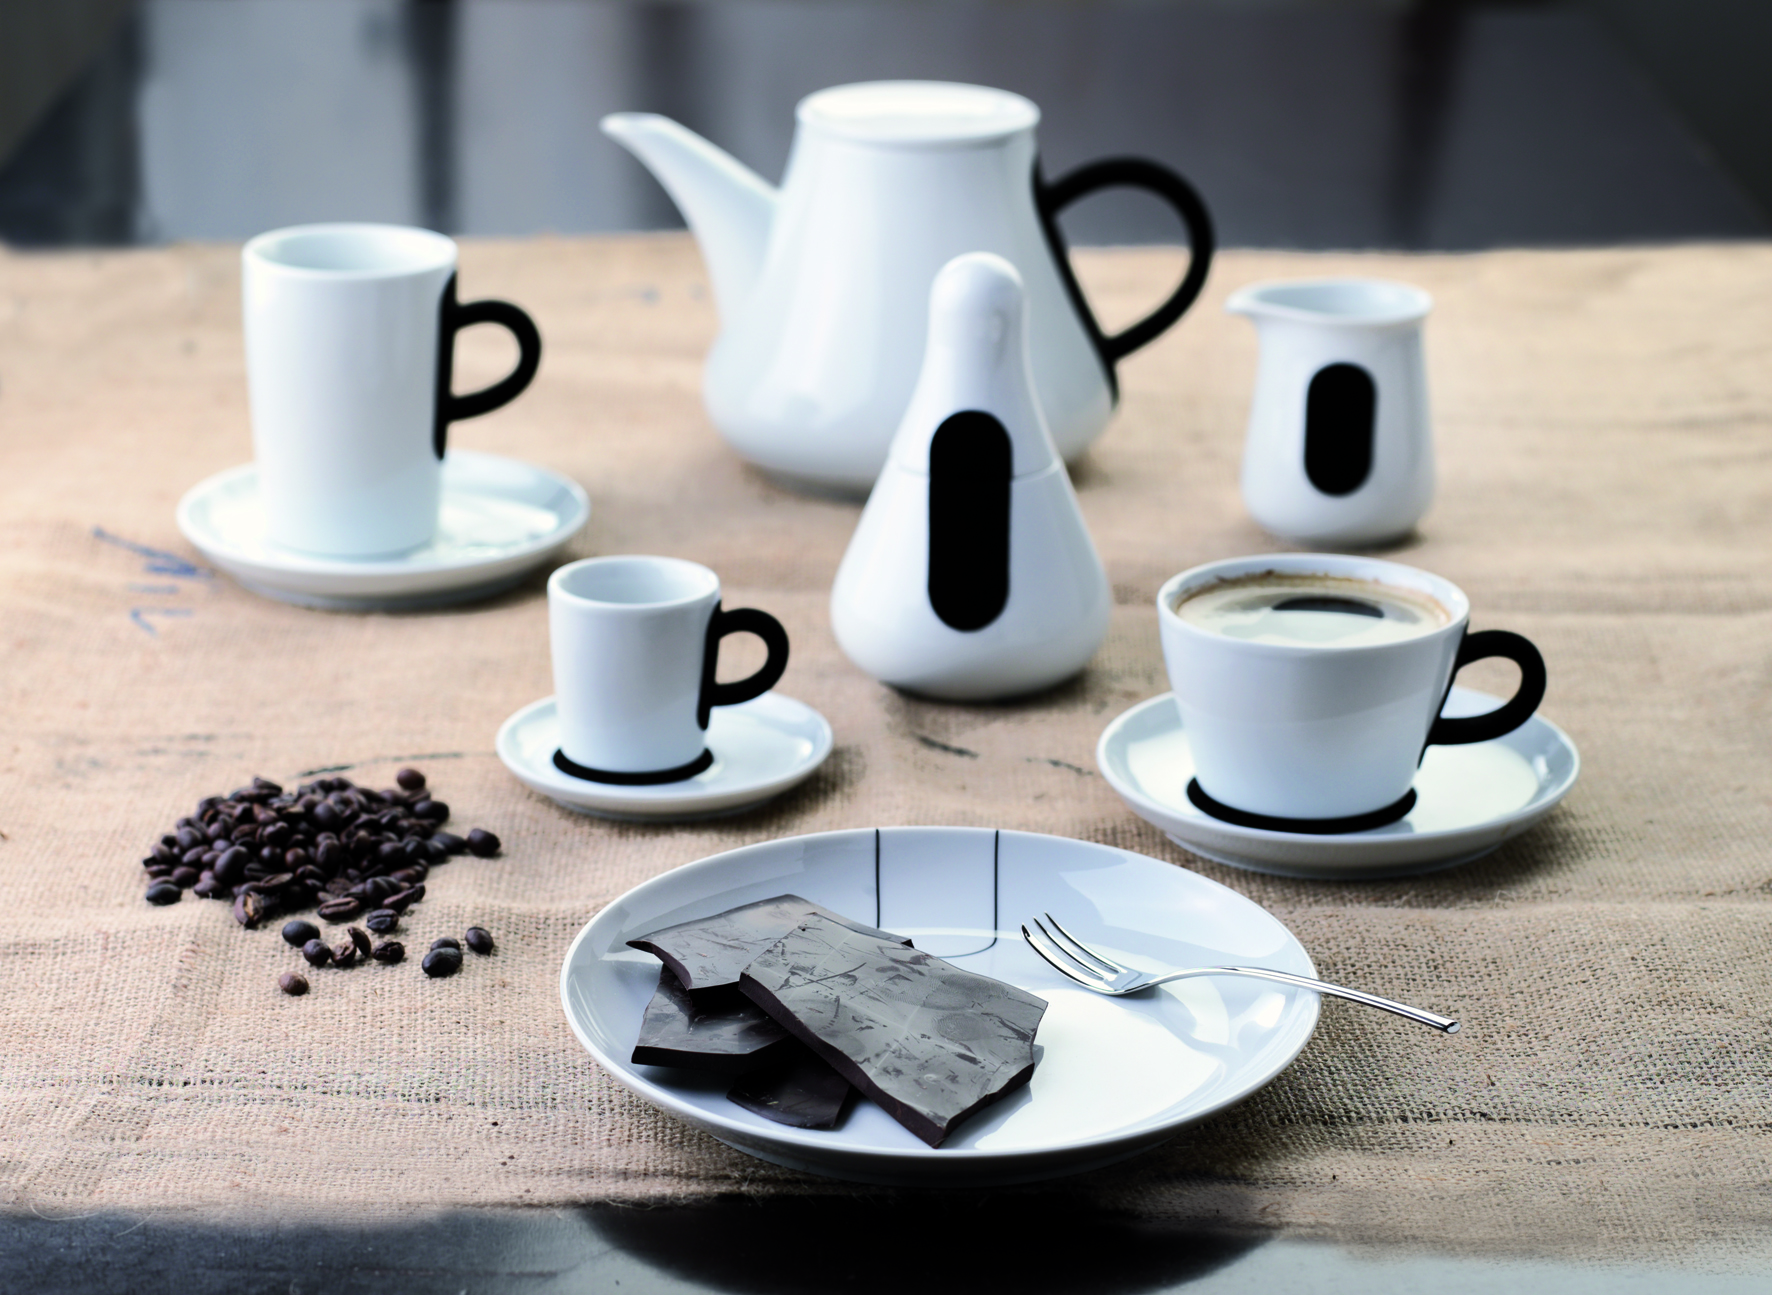 kahla touch  porcelain with a velvety soft surface - kahla one of europe's most modern and innovative porcelain producers hasbecome renowned for their innovation individuality and multifunctionalproduct